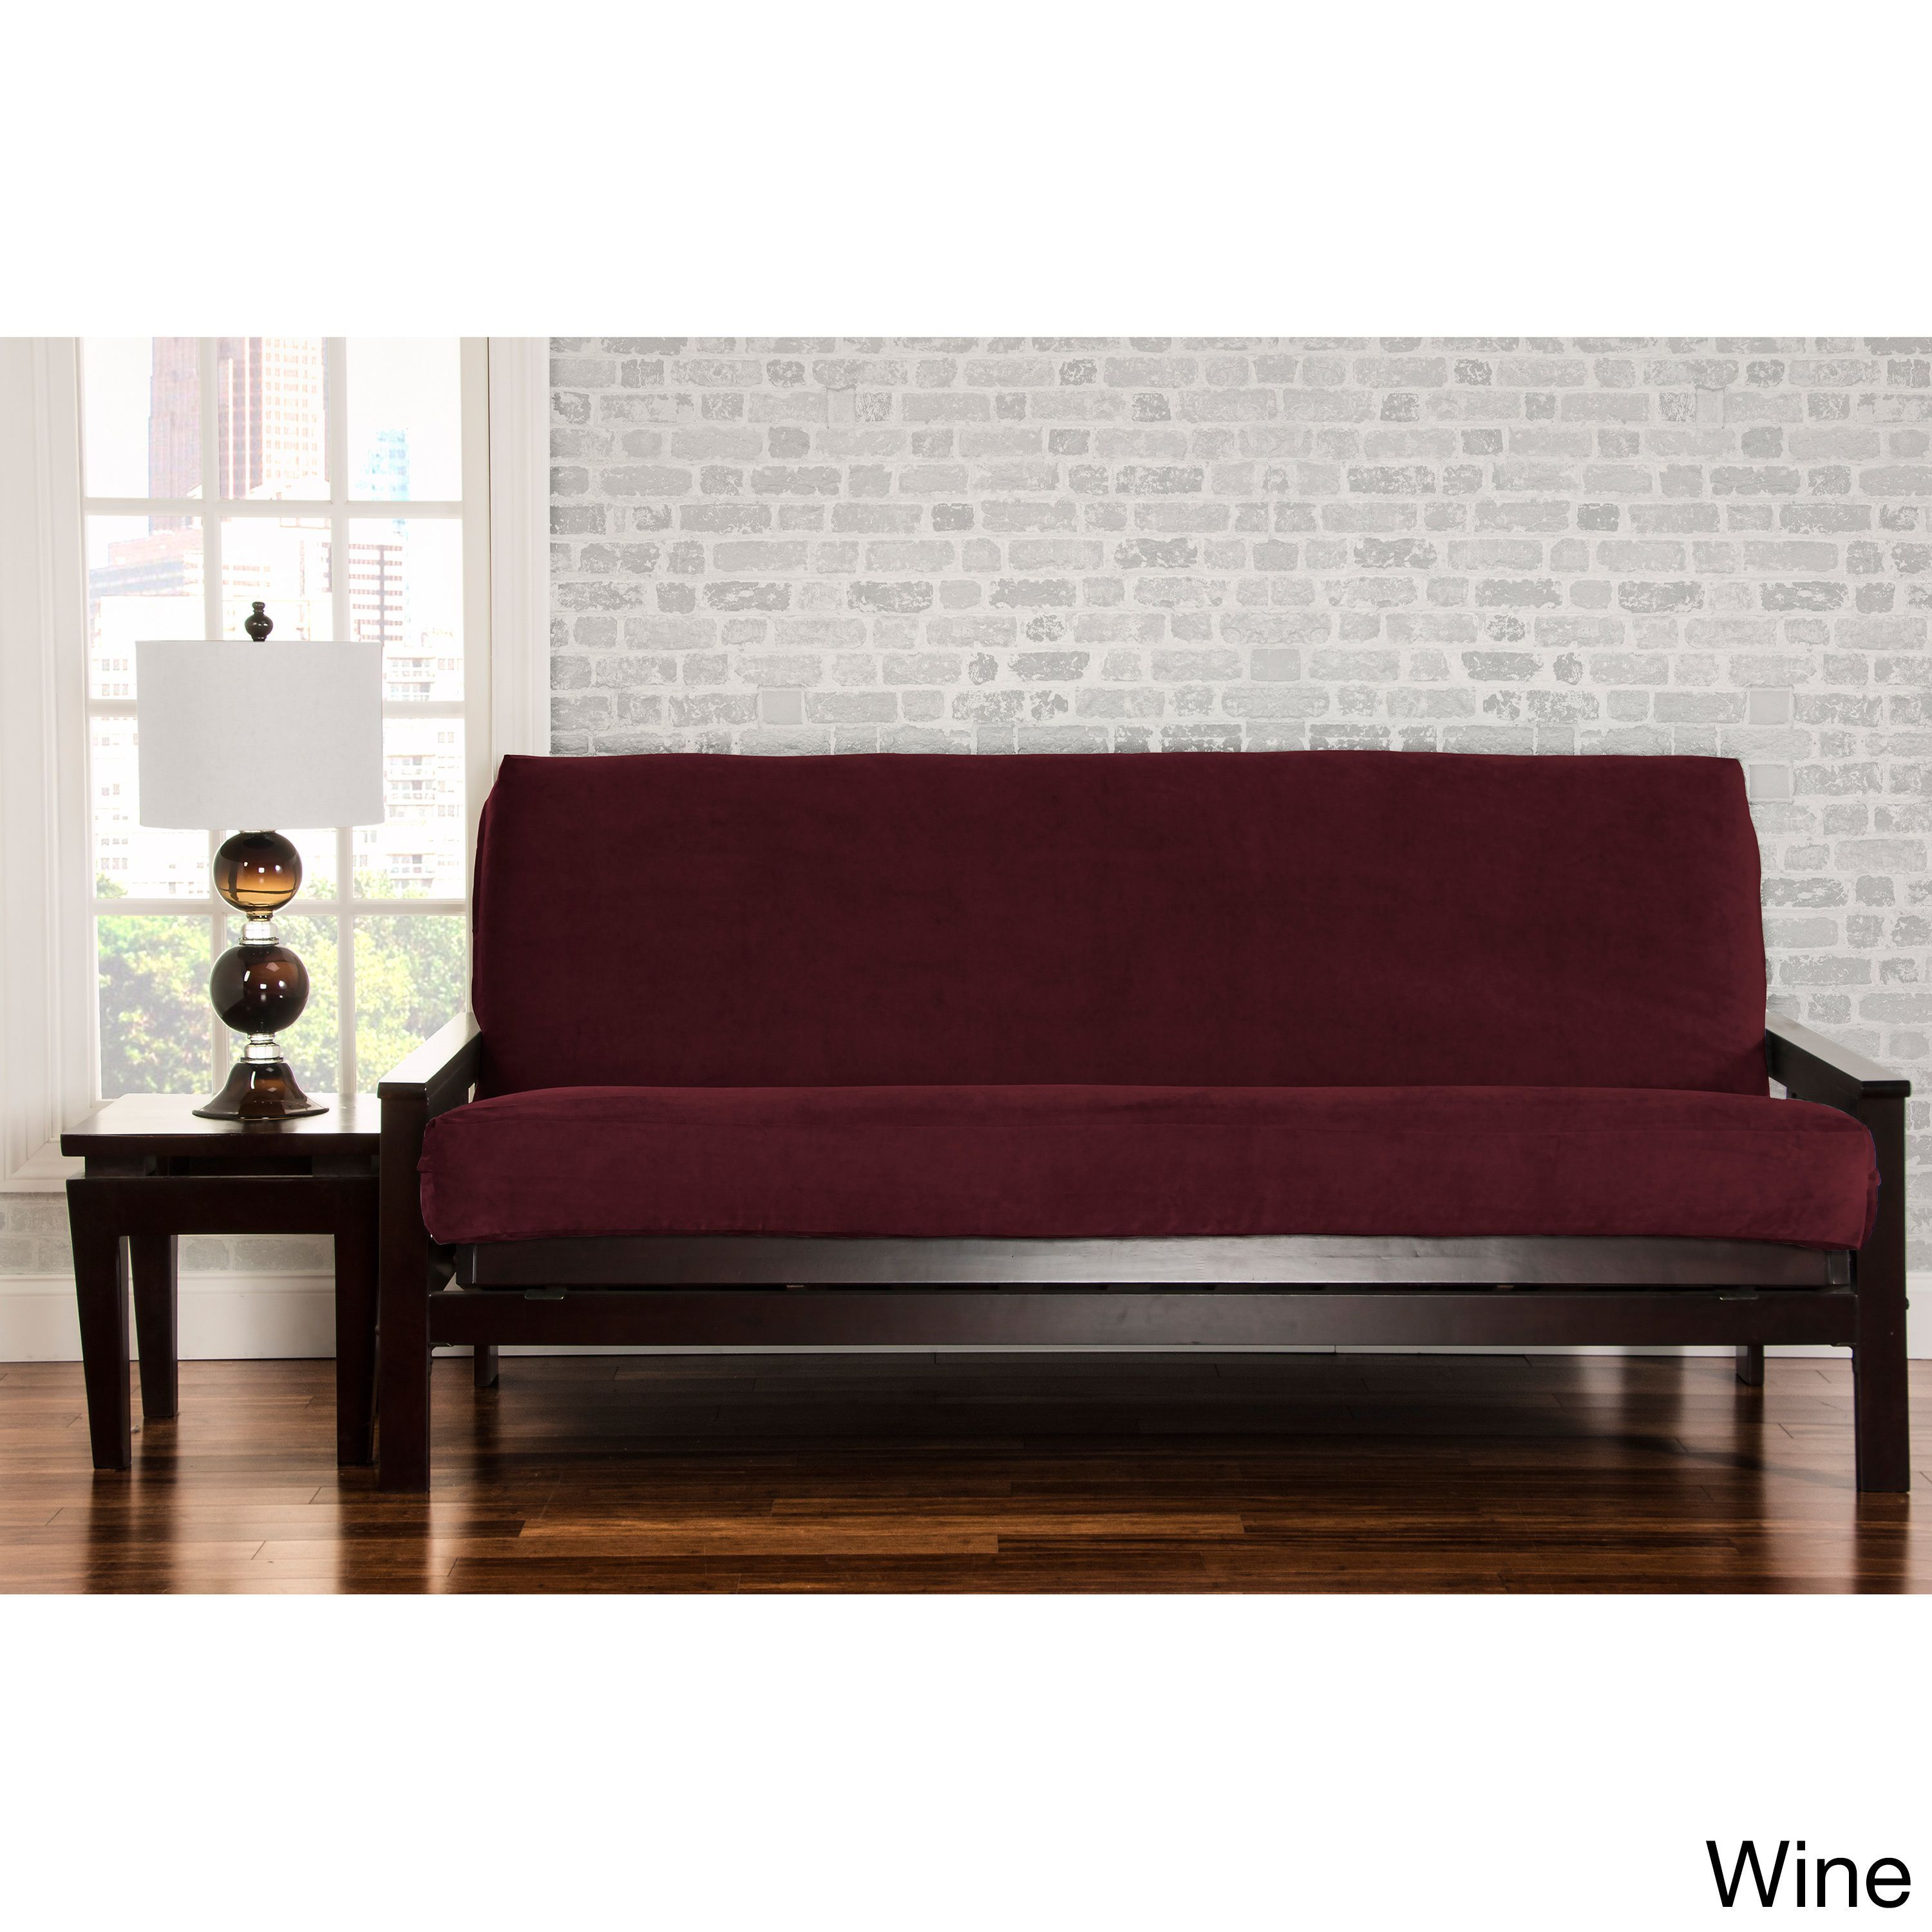 Siscovers Padma Futon Cover Wine Queen Size Red Solid